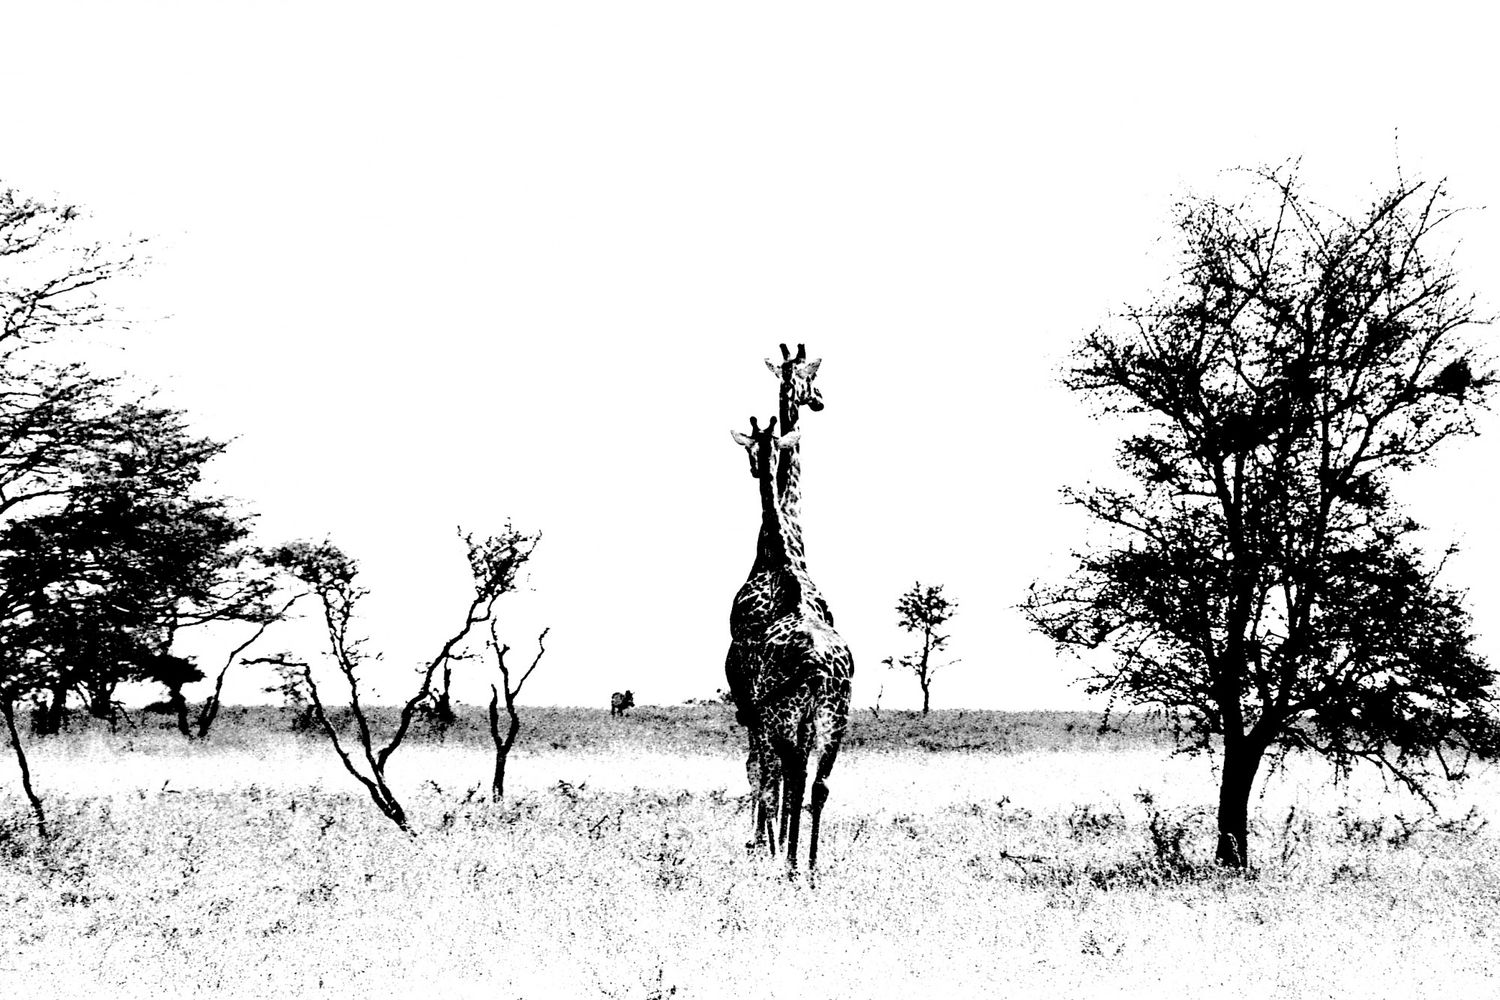 Giraffe - 2, Serengeti 2016   Edition 1 of 2